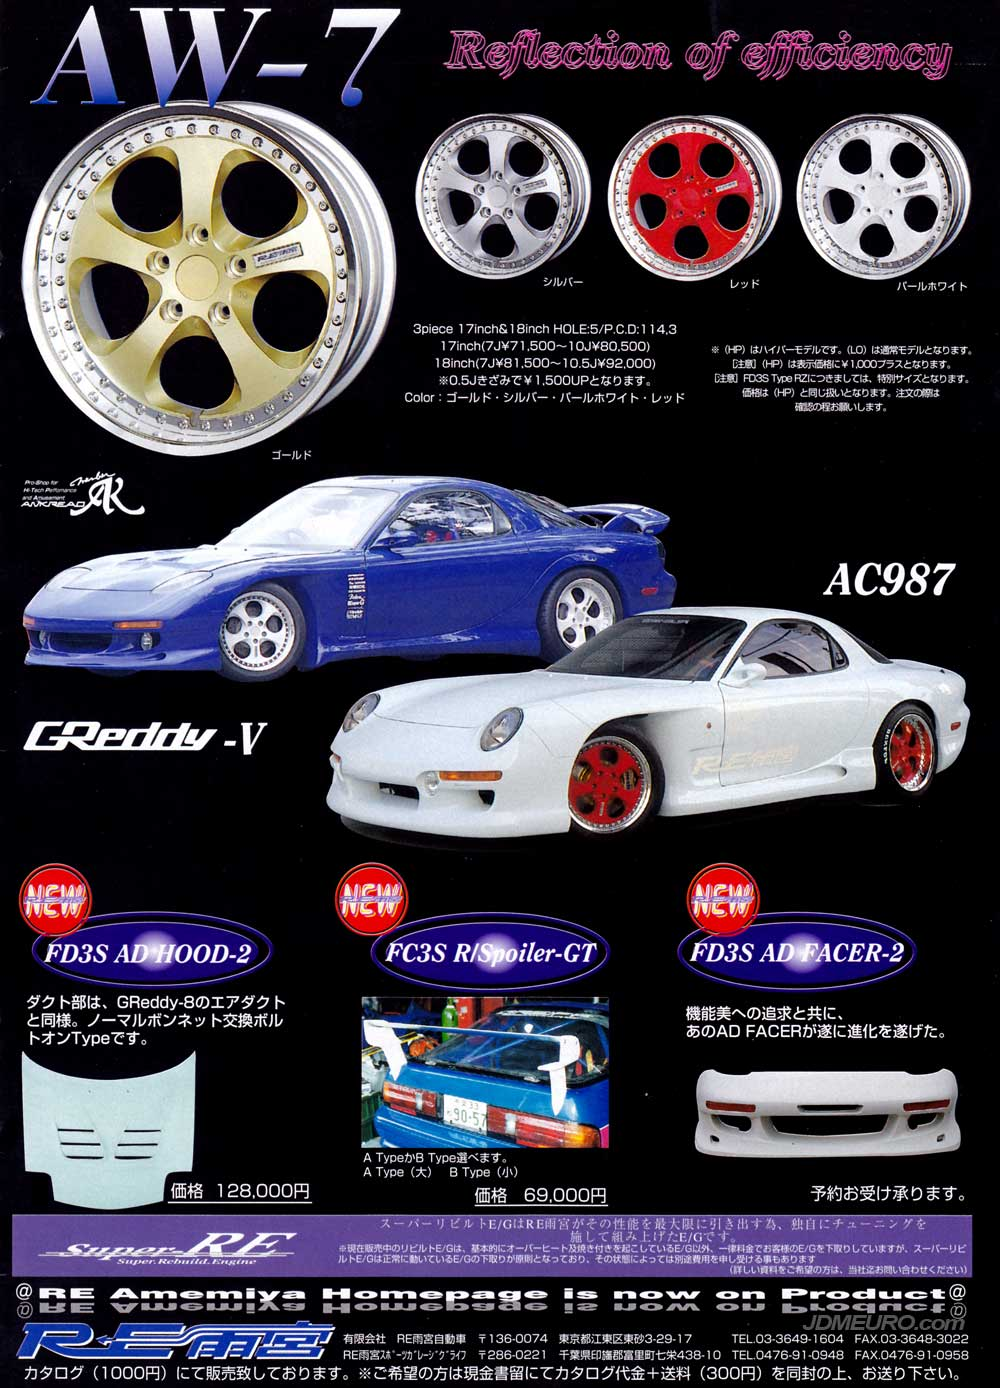 The RE Amemiya AW-7 are JDM Wheels made exclusively for the Mazda RX-7 FD3s. The RE Amemiya AW-7 a feature a rounded 5 spoke face bolted to an aluminum barrel in 2 piece construction. The RE Amemiya AC987 is a bodykit for the Mazda RX-7 FD3s made in conjunction with greddy, as it is also known as the RE Amemiya Super GReddy Body Kit. The RE Amemiya AC987 / RE Amemiya Super GReddy changes the RX-7's looks with fixed Porsche style headlights in lieu of the factory pop up lights.